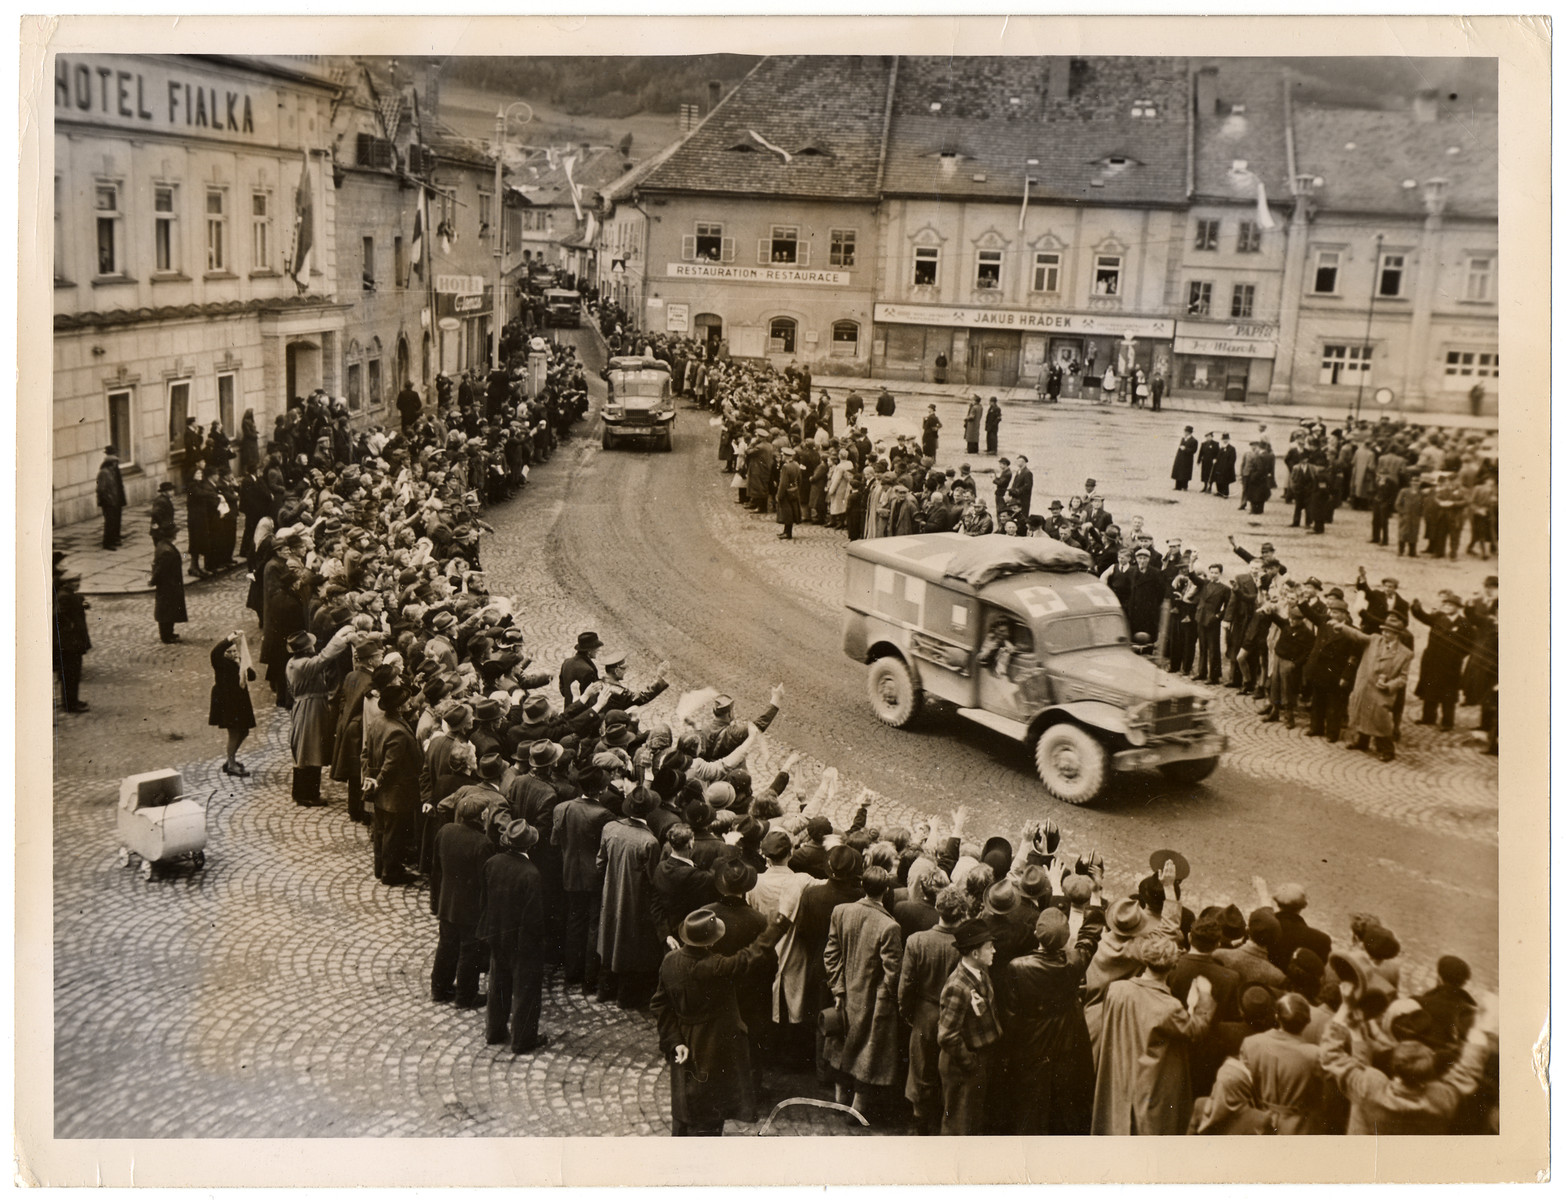 """Czech civilians cheer American soldiers.  Original Caption: """"Civilians of Schuttenhoffen, Czechoslovakia, line up to cheer the entrance of Fourth Armored Division forces of the Third US Army, who liberated their town from the Germans. This photograph was taken May 6, 1945, while fighting was still raging in the country. This continued even after the German high command signed unconditional surrender terms May 7, 1945, although the Germans in Czechoslovakia were ordered to cease firing and were threatened with heavy penalties. Czechoslovakia was invaded by the Germans in 1939 and was reentered by Allied forces May 1, 1945."""""""